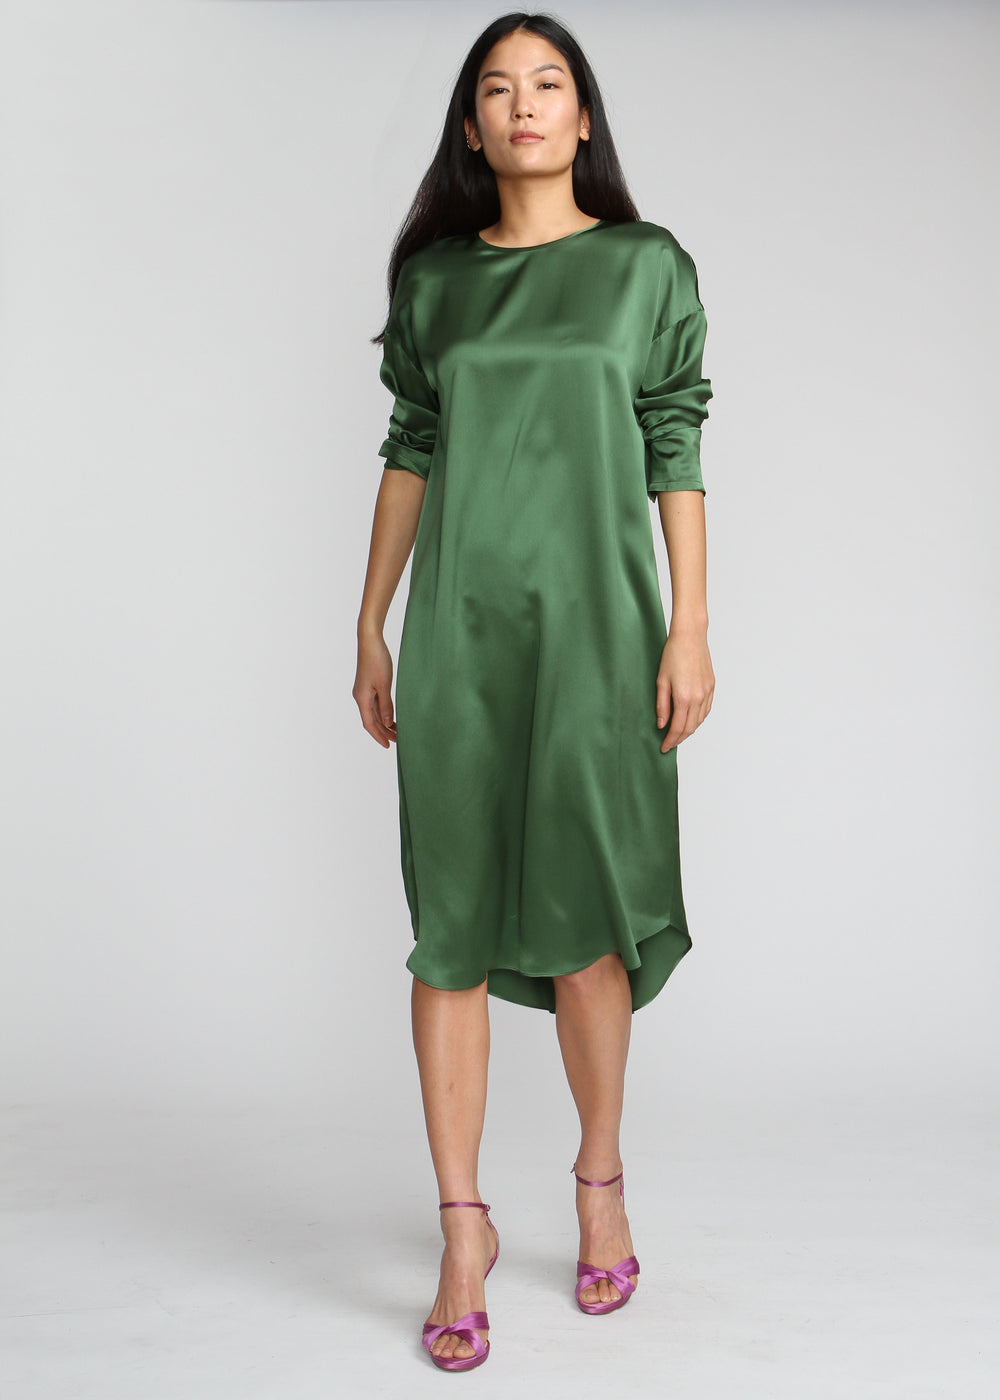 Silky T Dress - Ivy Green - The Frock NYC